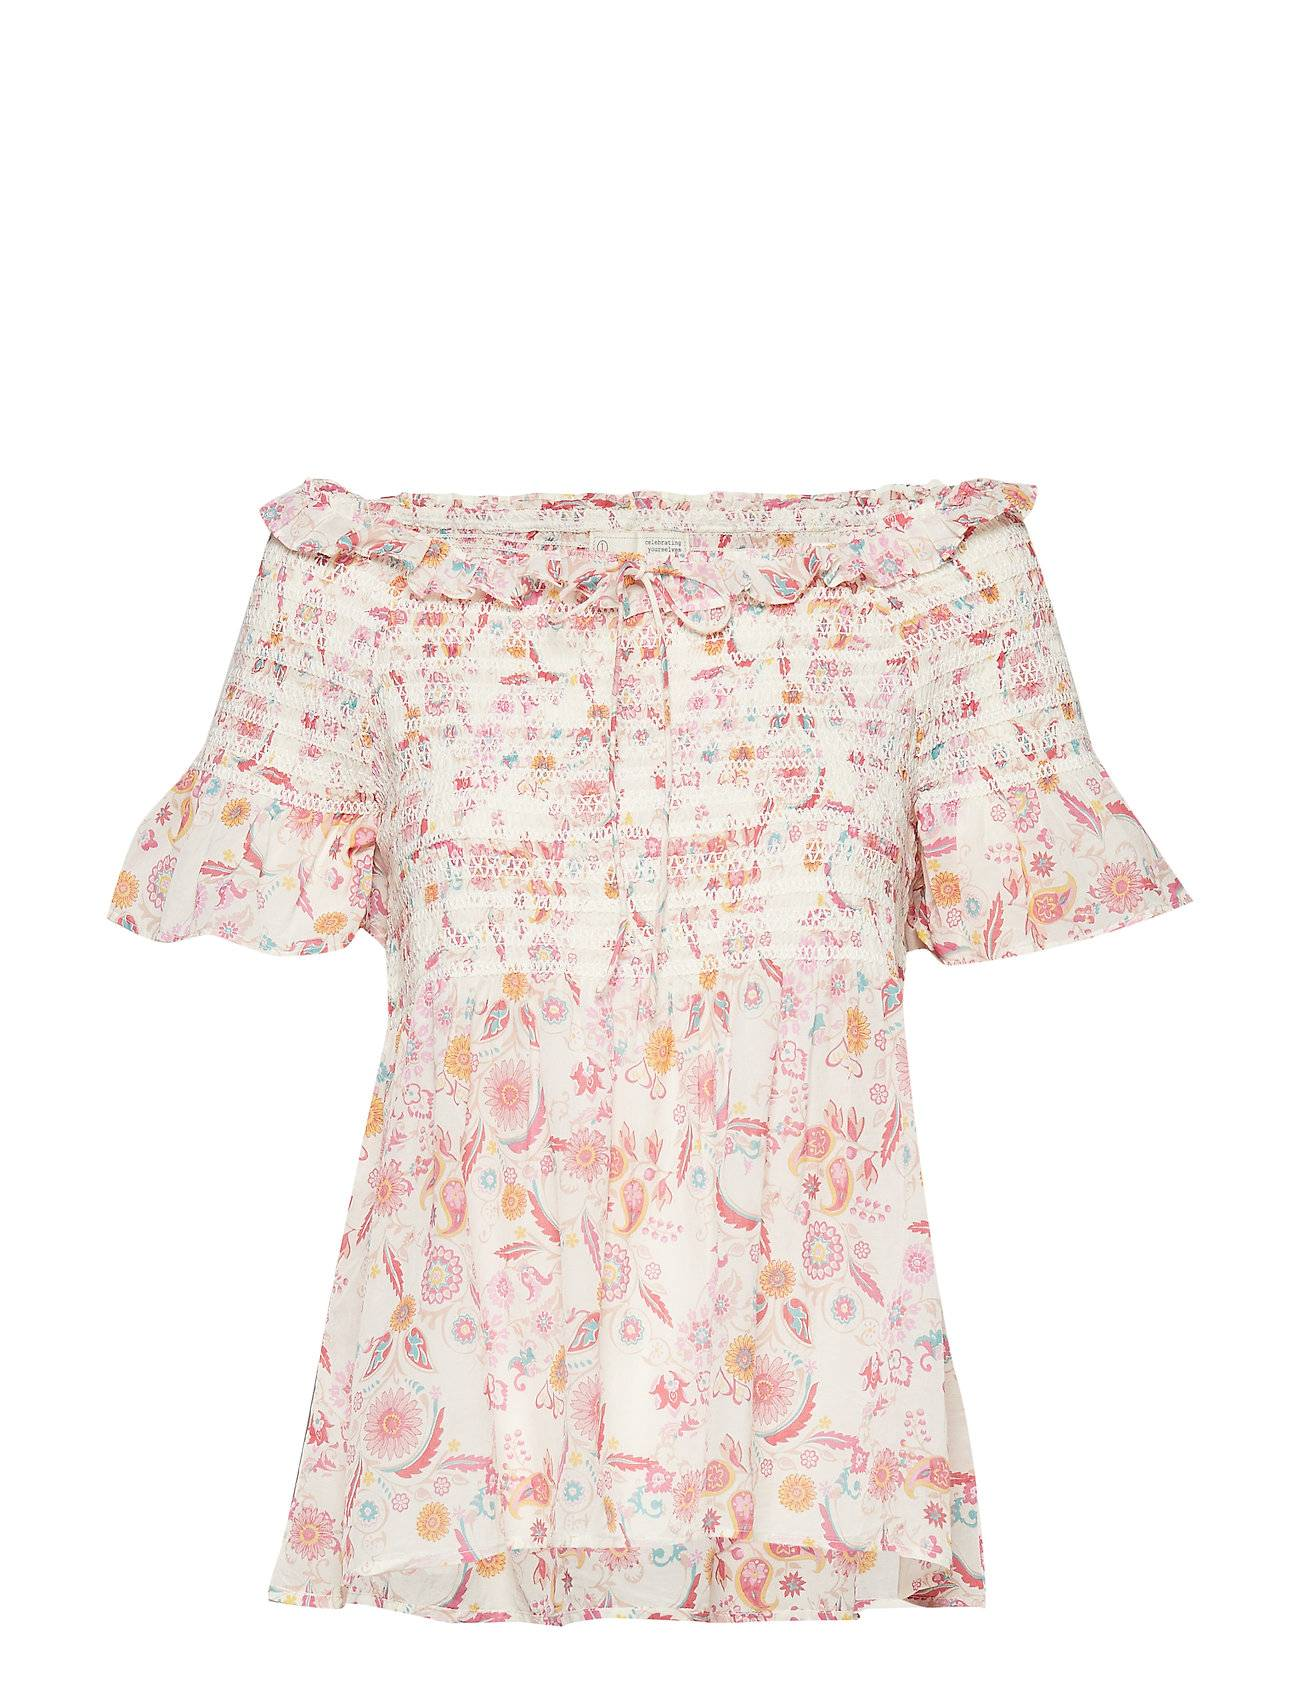 Image of ODD MOLLY Majestic Blouse Blouses Short-sleeved Vaaleanpunainen ODD MOLLY